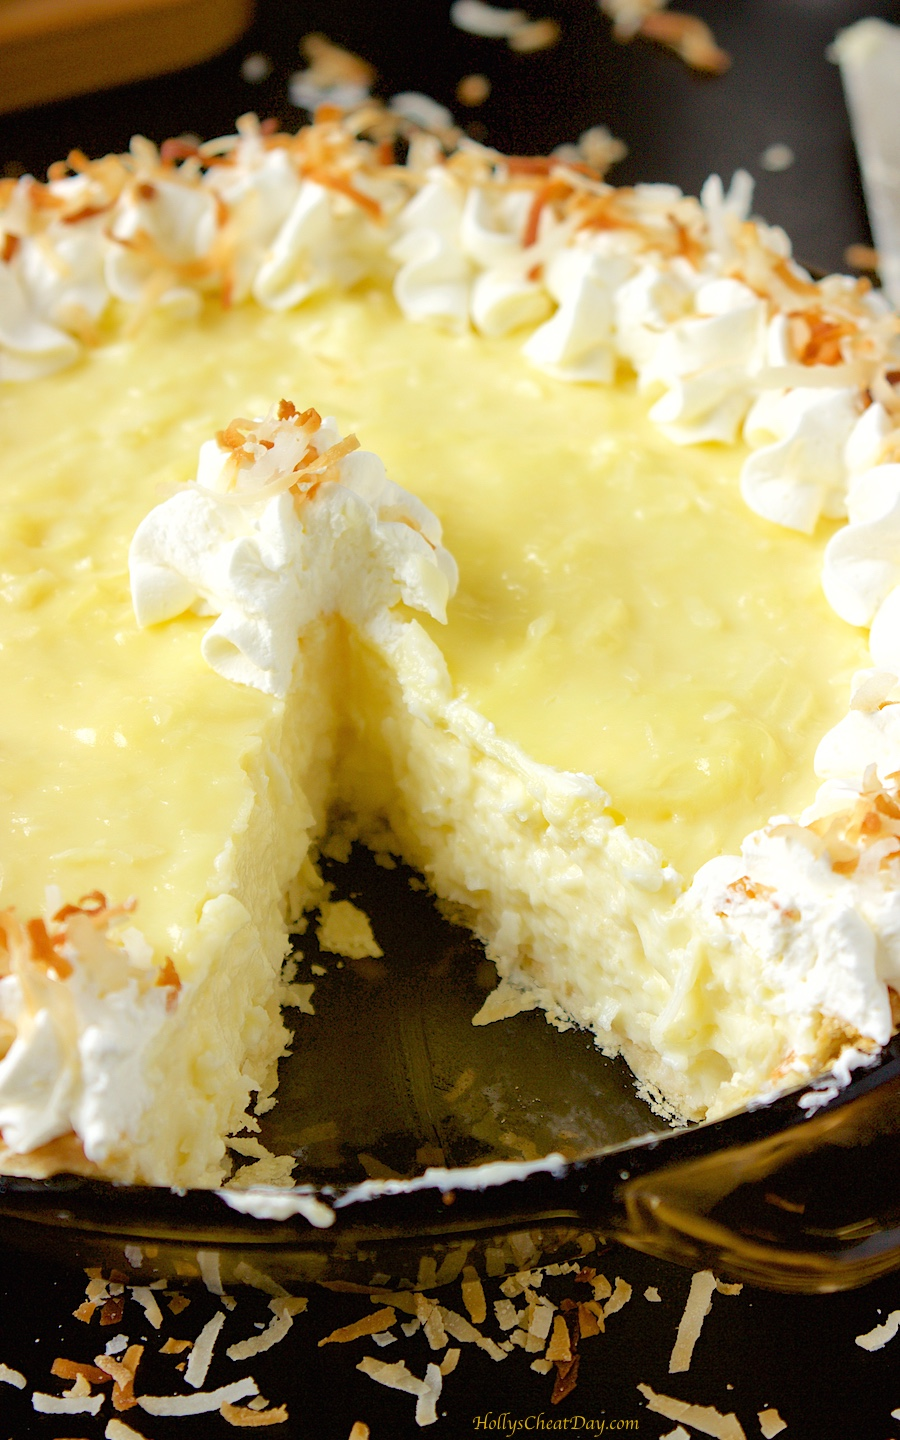 Homemade Coconut Cream Pie - Don't Sweat The Recipe Old fashioned coconut cream pie from scratch